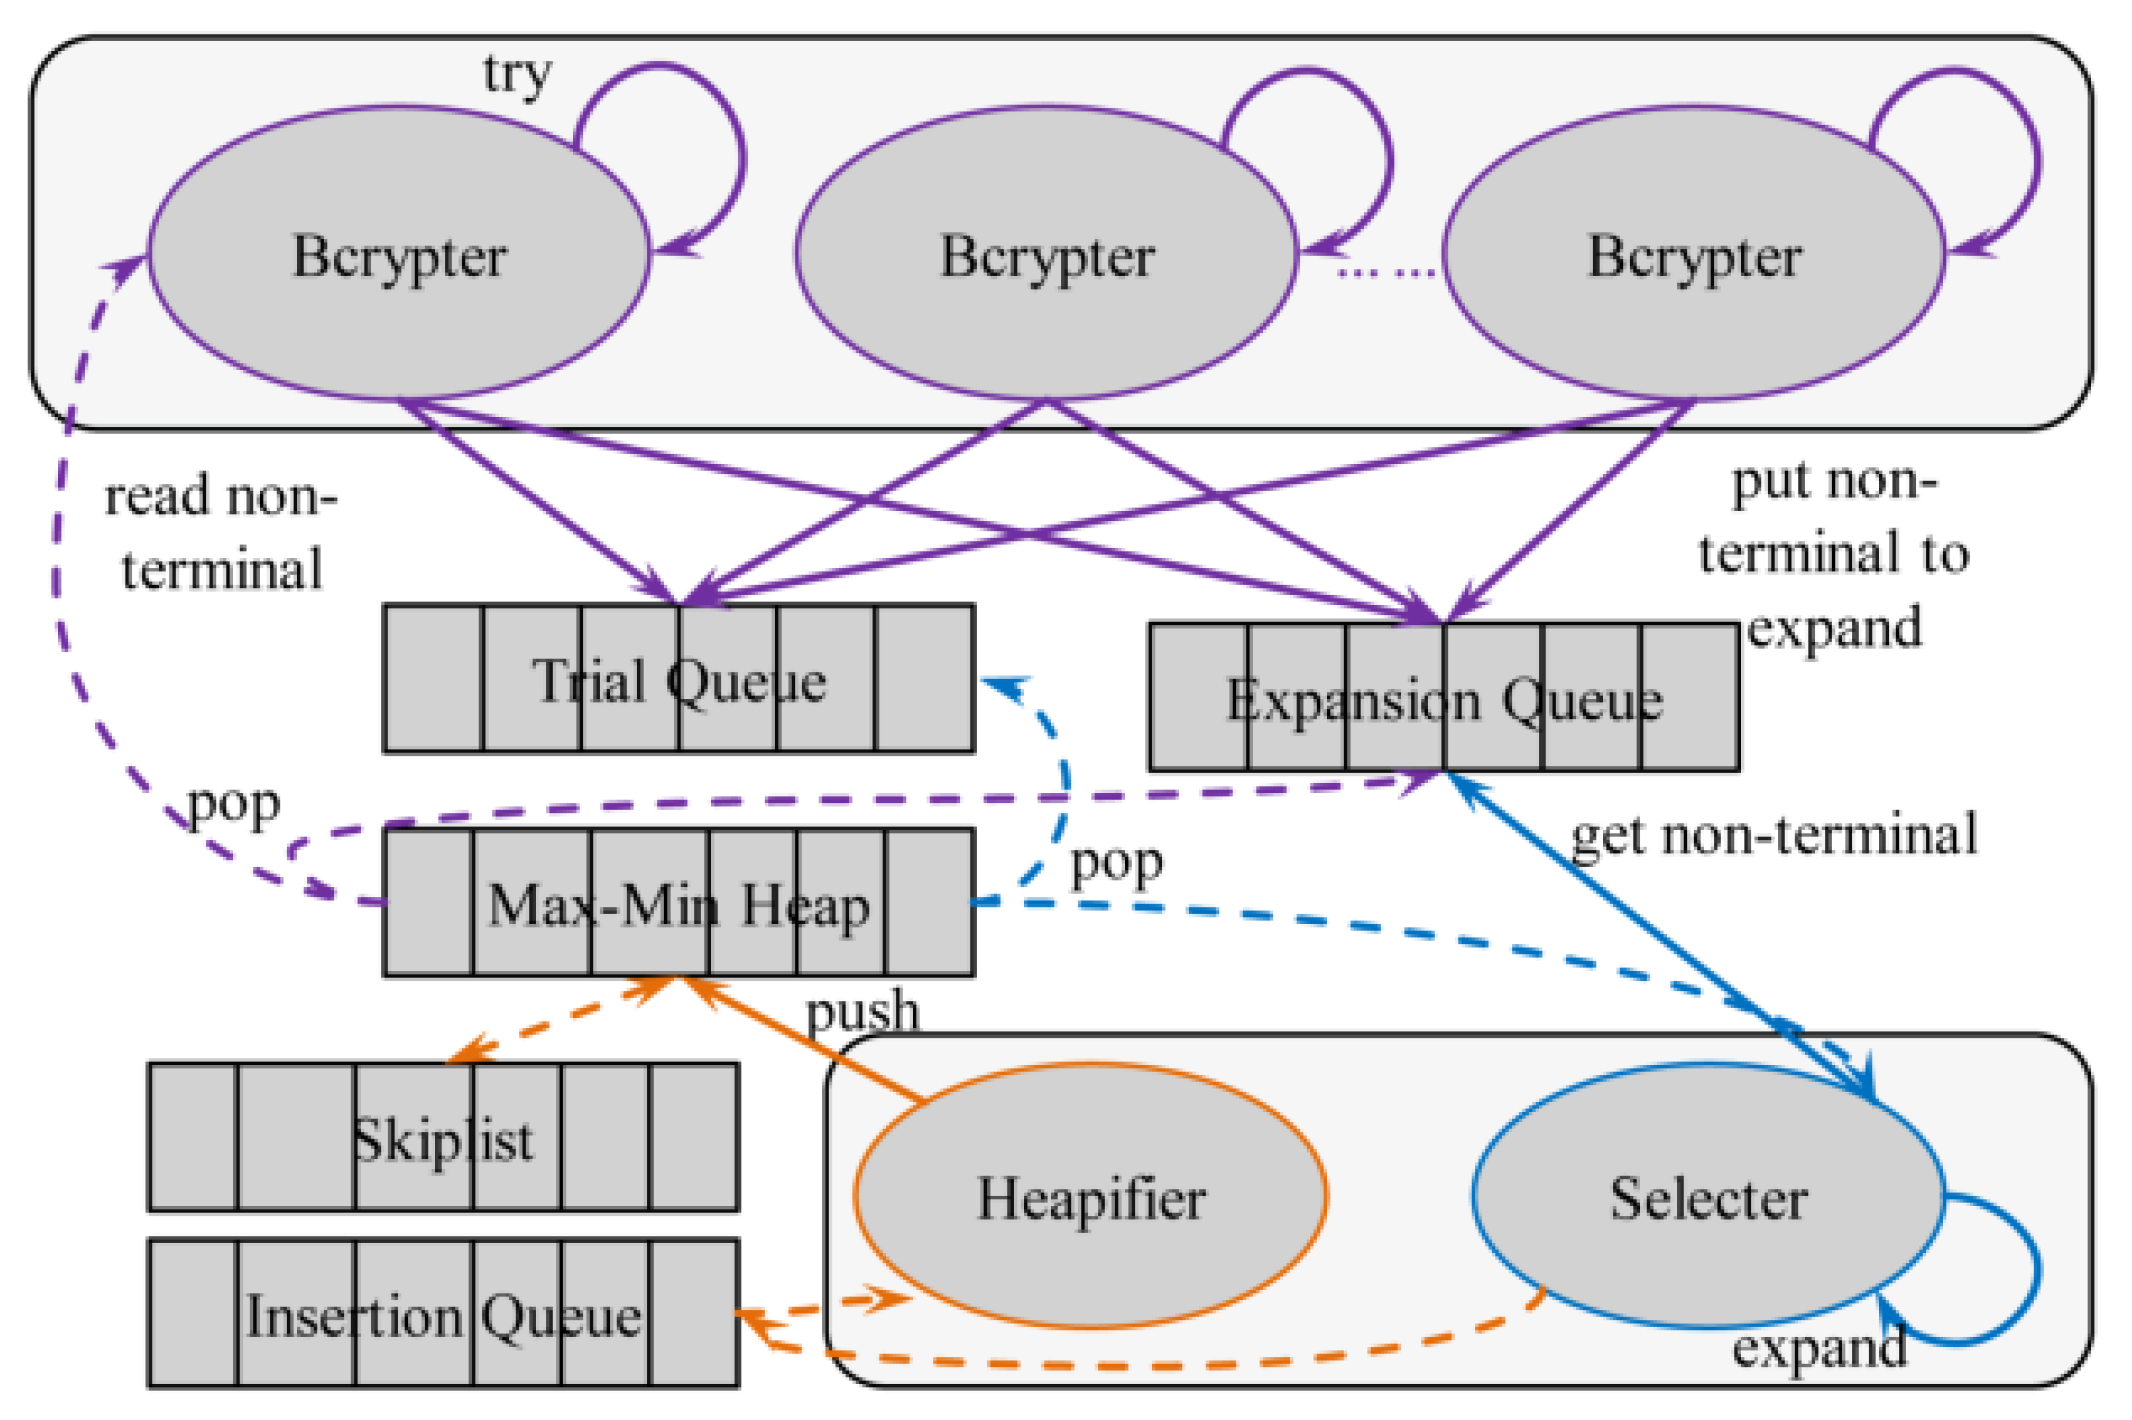 Symmetry | Free Full-Text | Study on Massive-Scale Slow-Hash